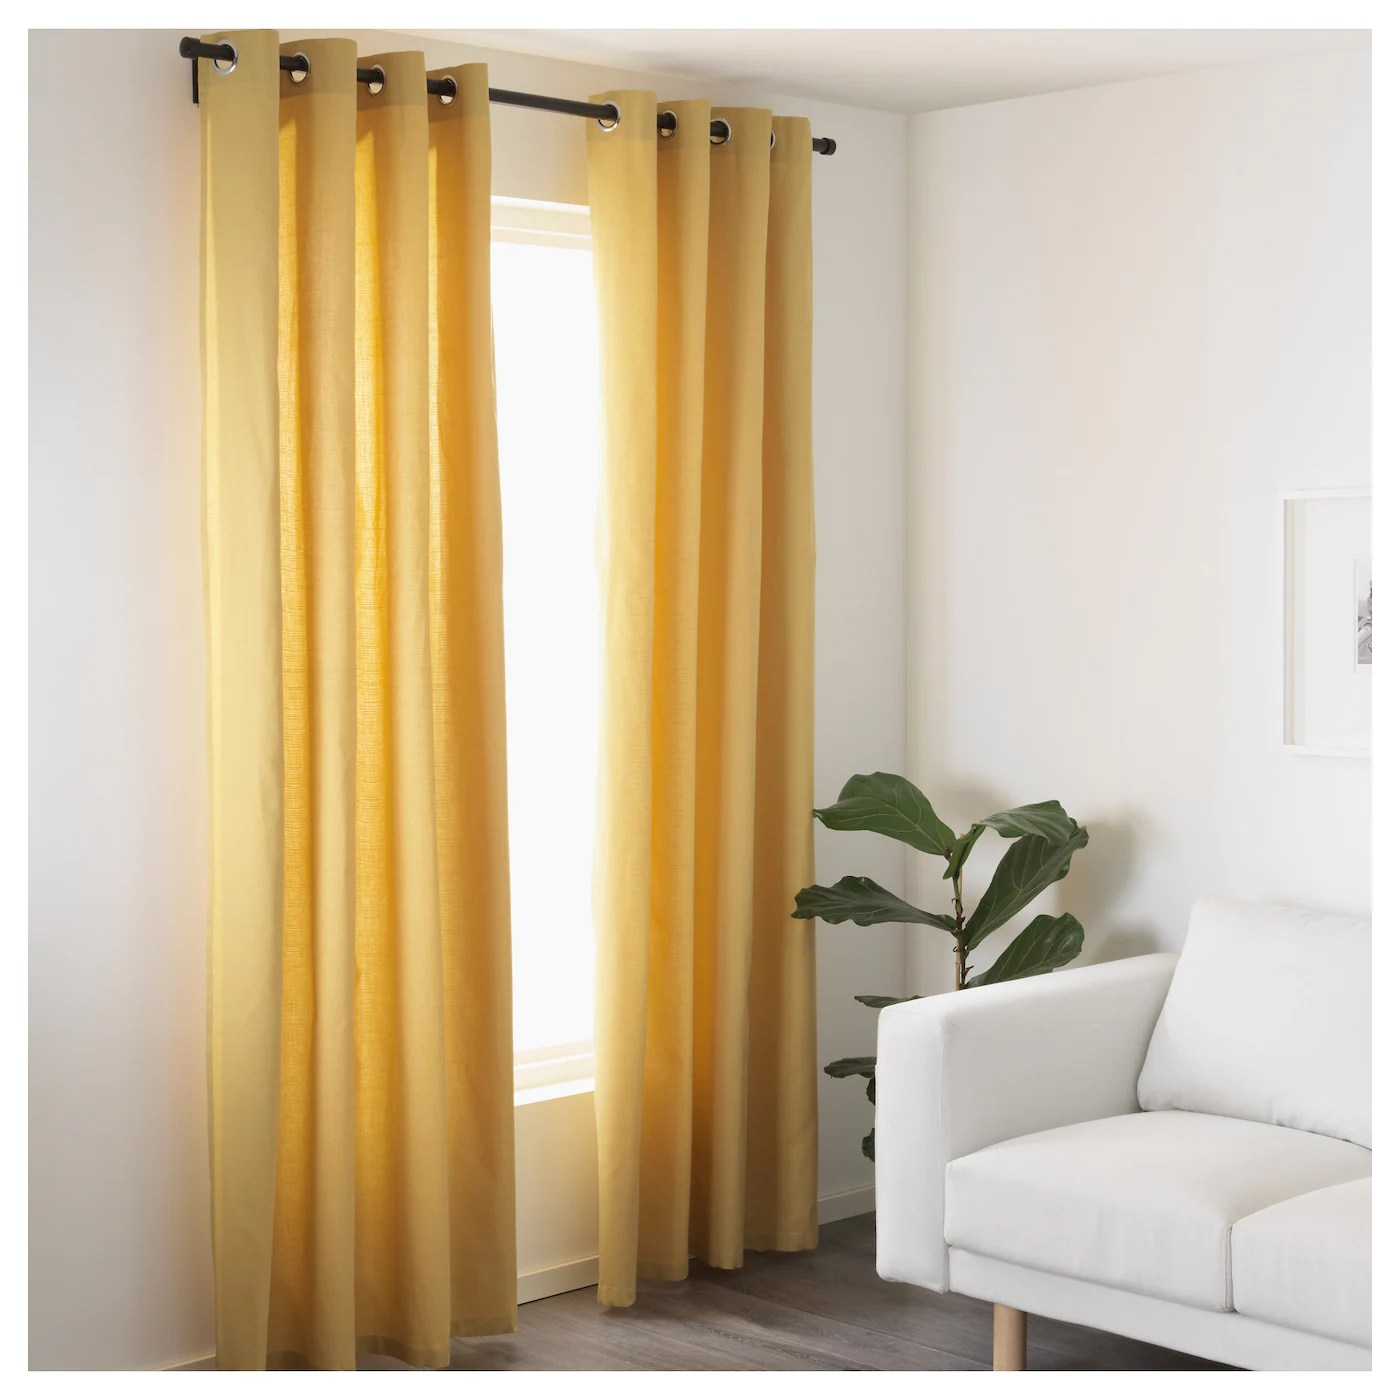 Curtain Ikea Mariam Curtains 1 Pair Yellow 145x250 Cm Ikea